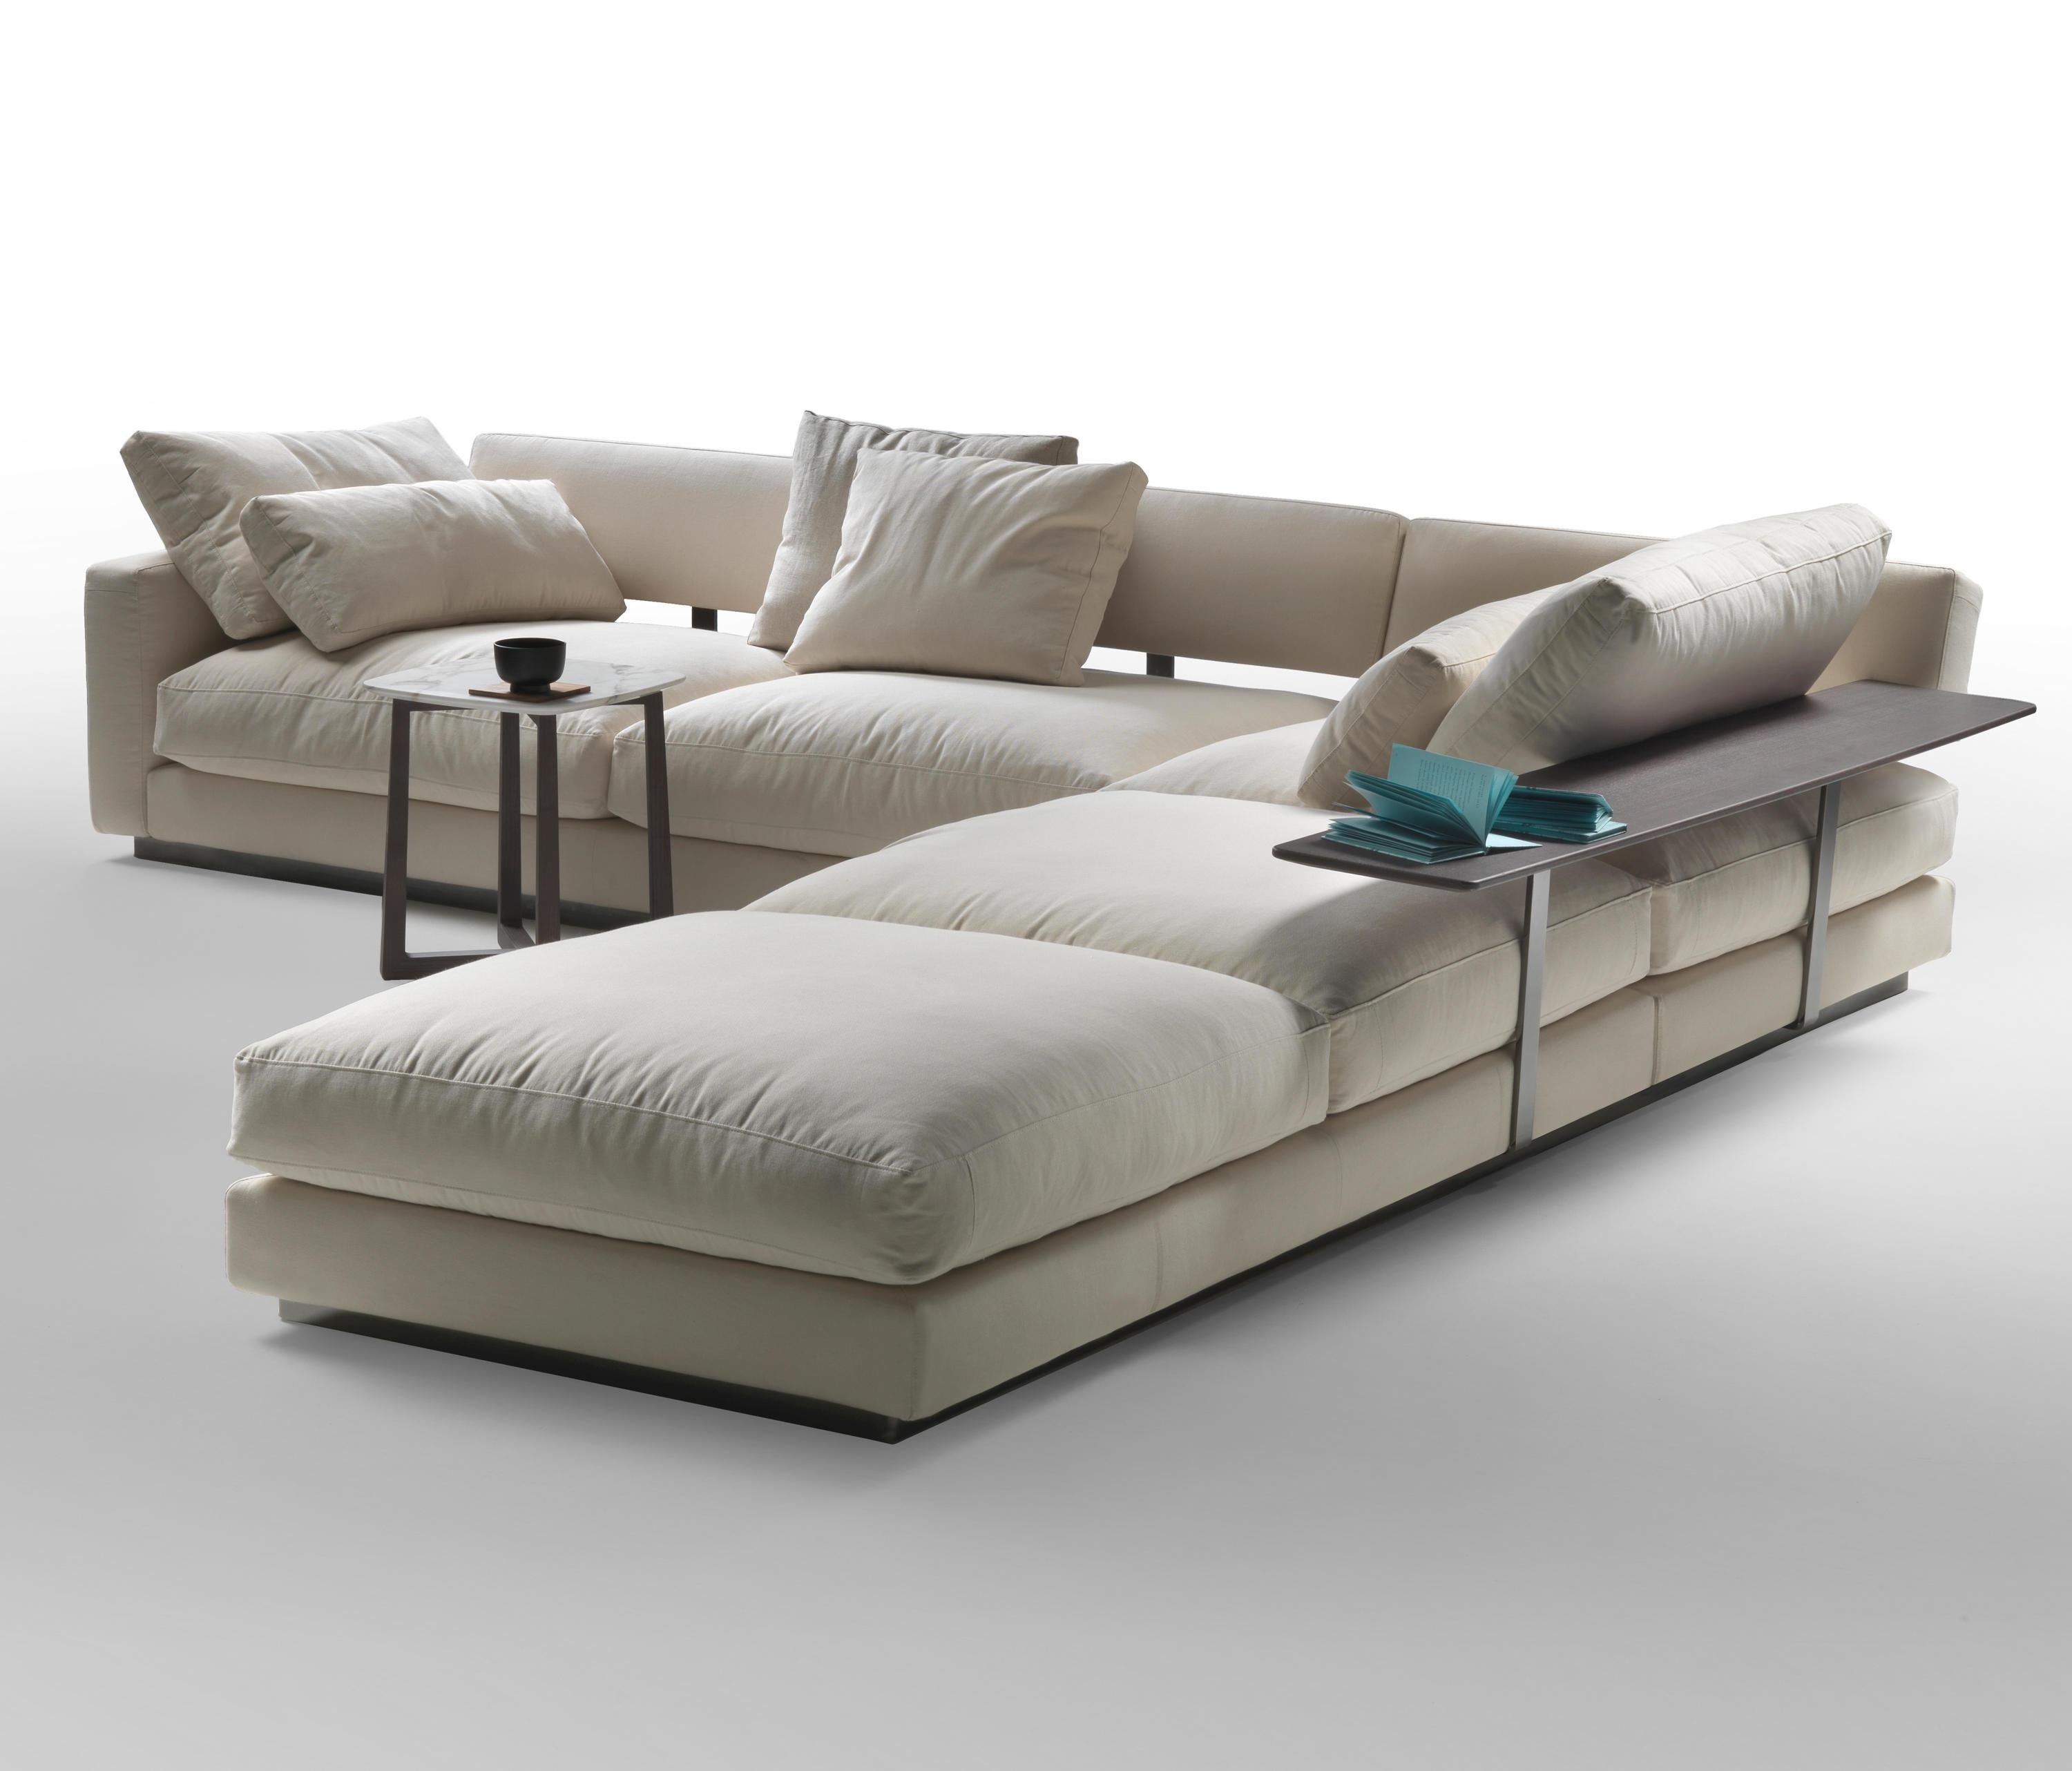 Pleasure Sectional Sofa – Modular Seating Systems From Flexform Inside Flexform Sofas (Image 15 of 20)